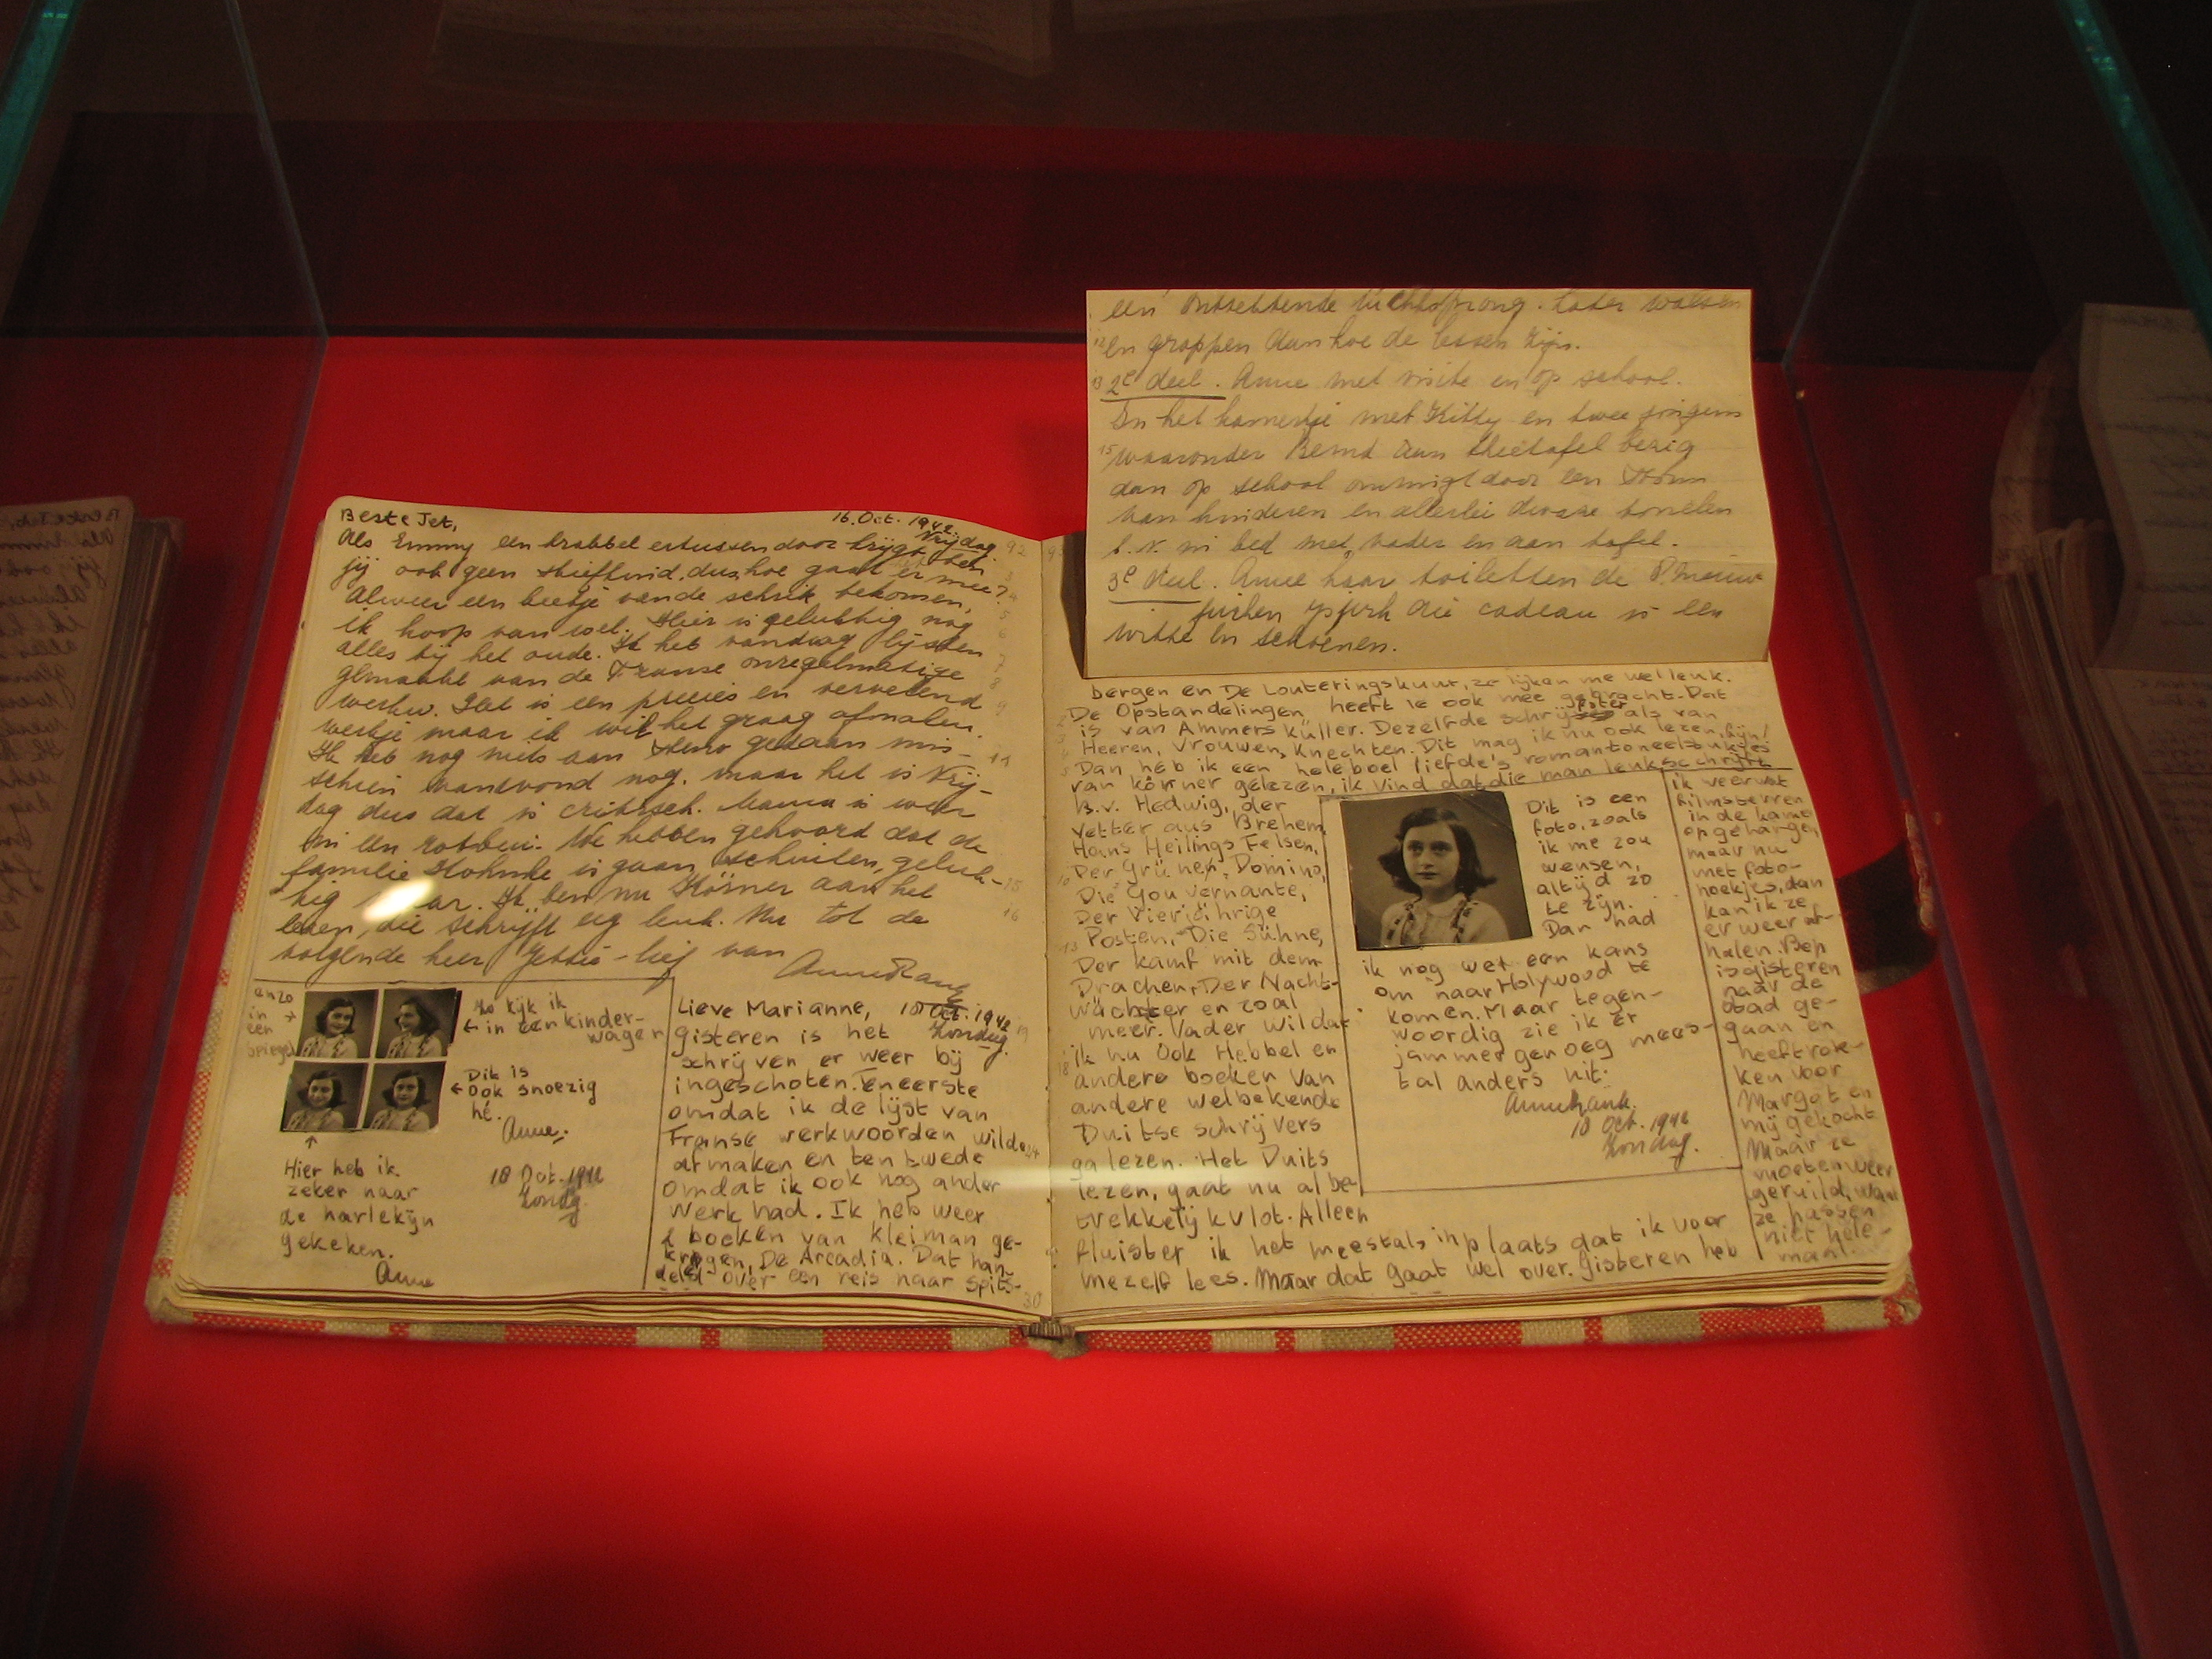 http://upload.wikimedia.org/wikipedia/commons/6/63/Anne_Frank_Diary_at_Anne_Frank_Museum_in_Berlin-pages-92-93.jpg